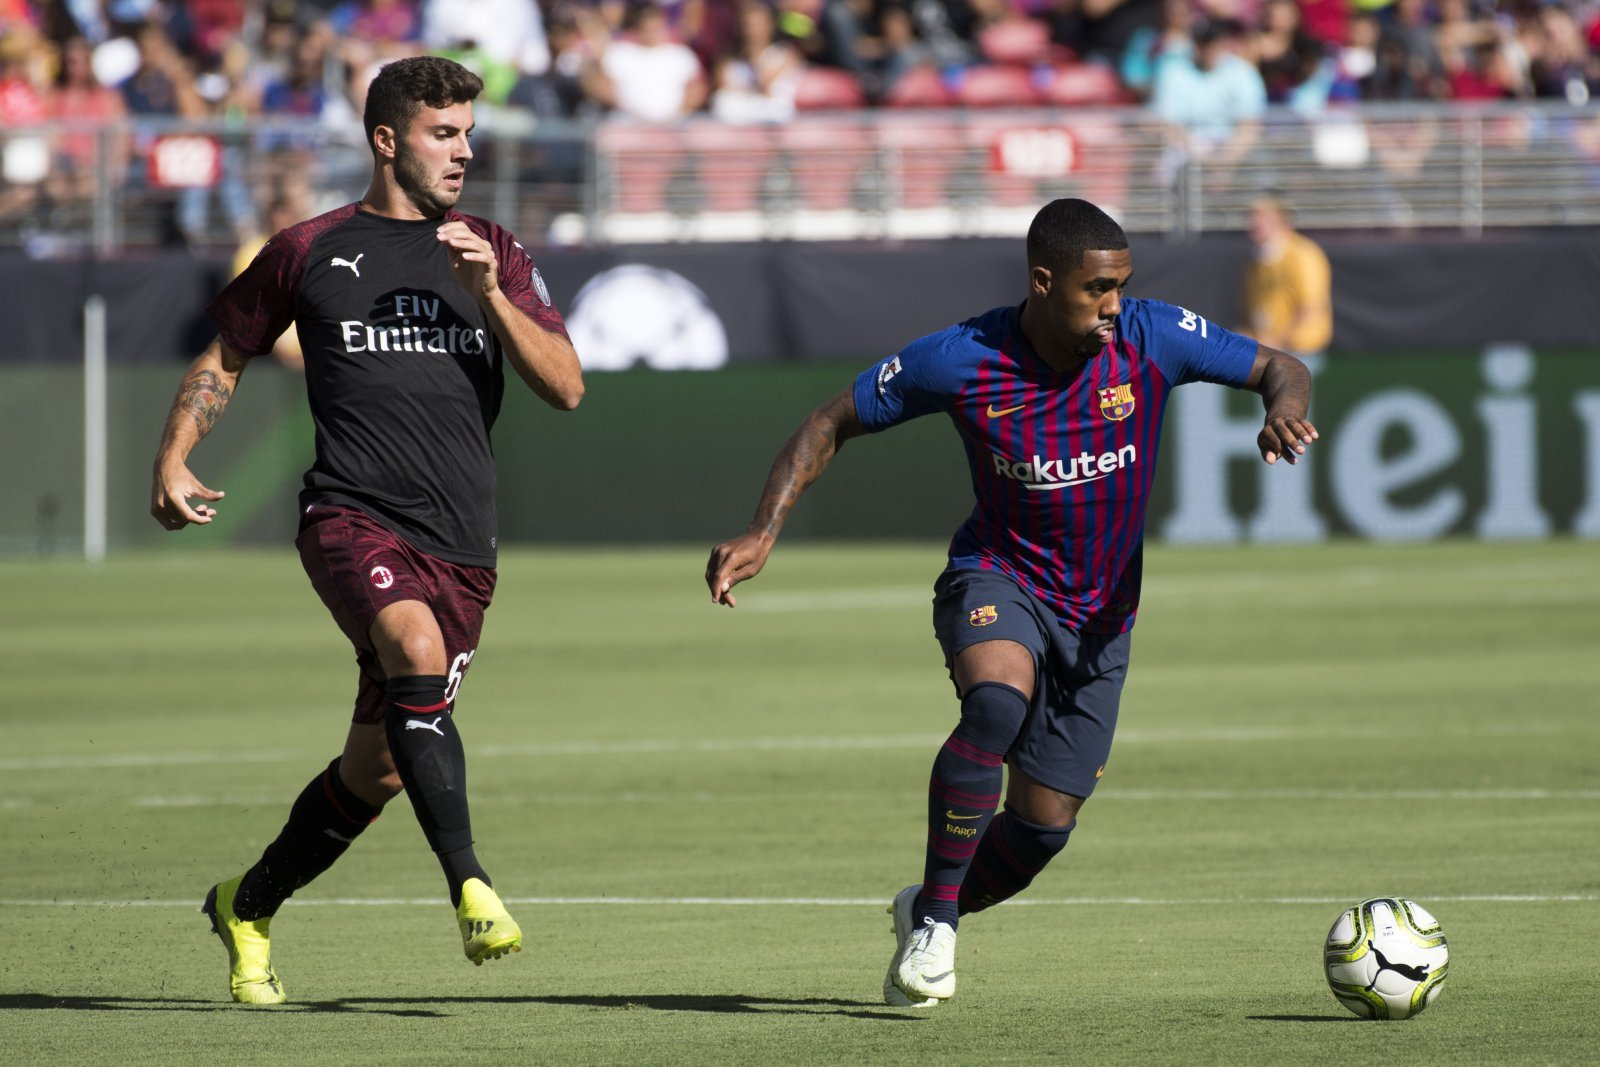 Everton have got priorities wrong with Malcom interest